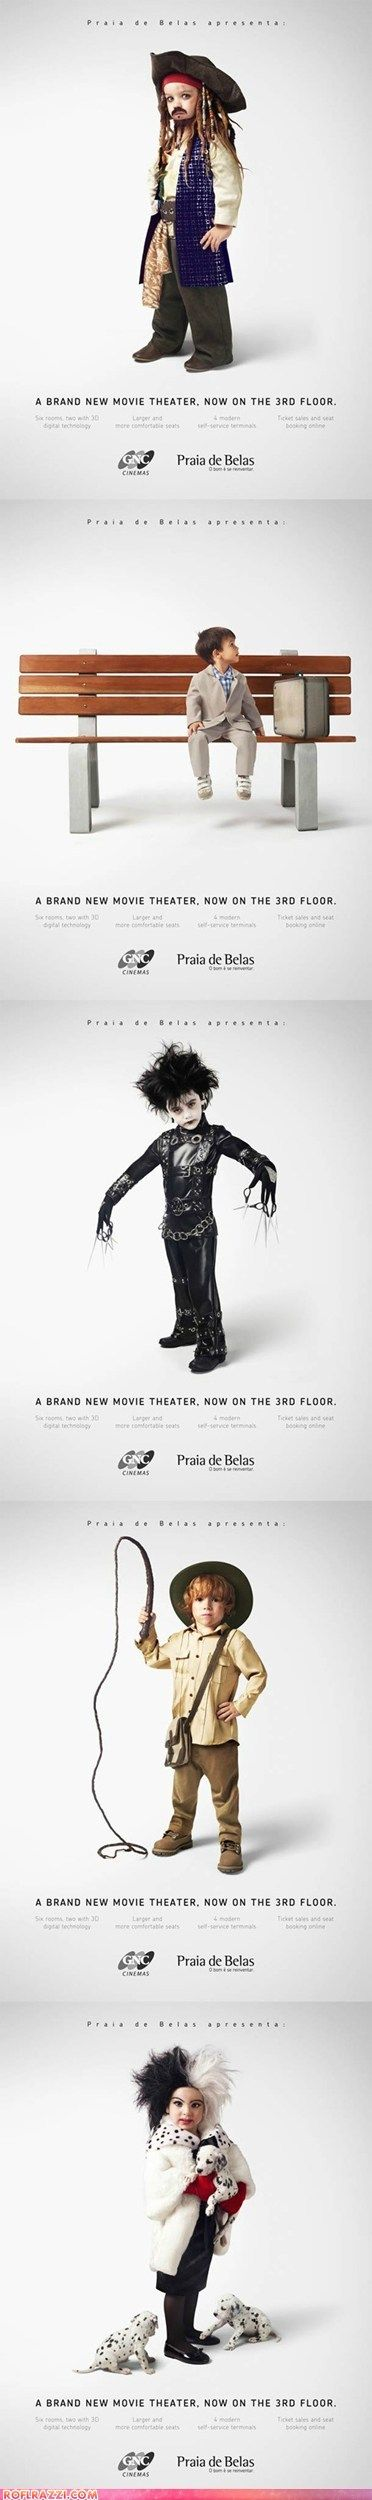 Children as Famous Film Characters - This is too cute!